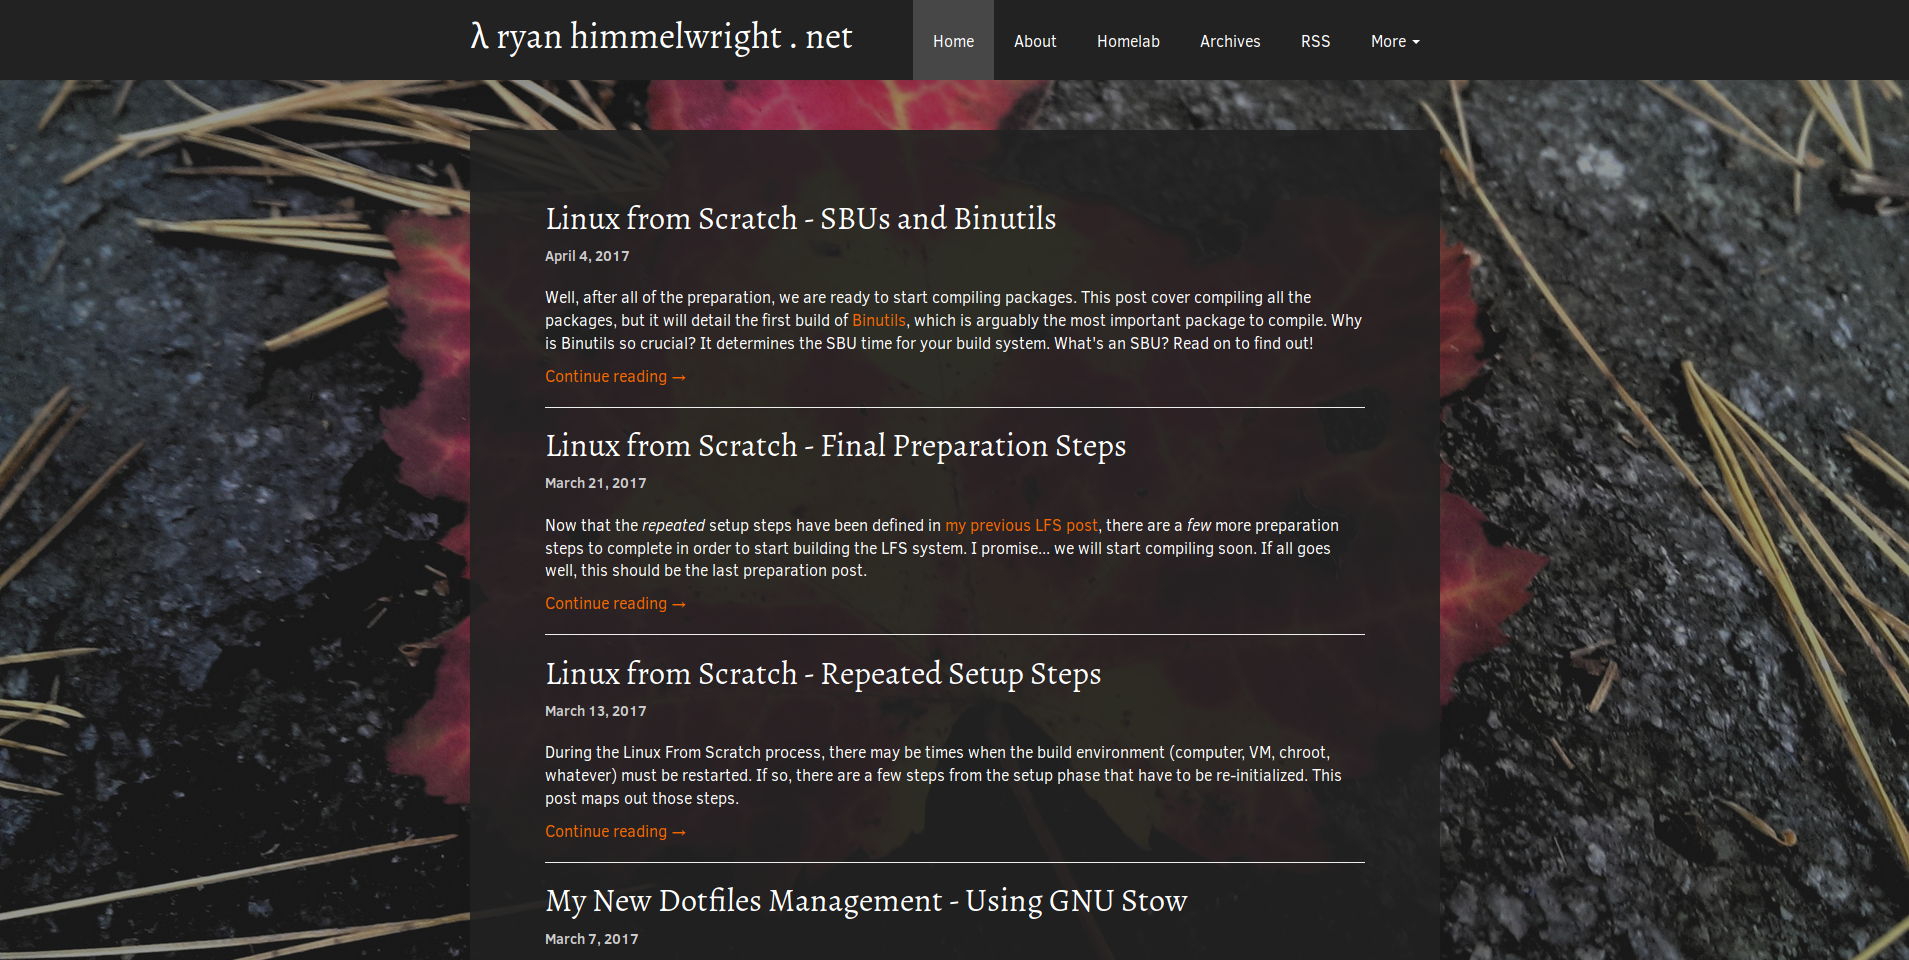 Homepage with Immutable Theme